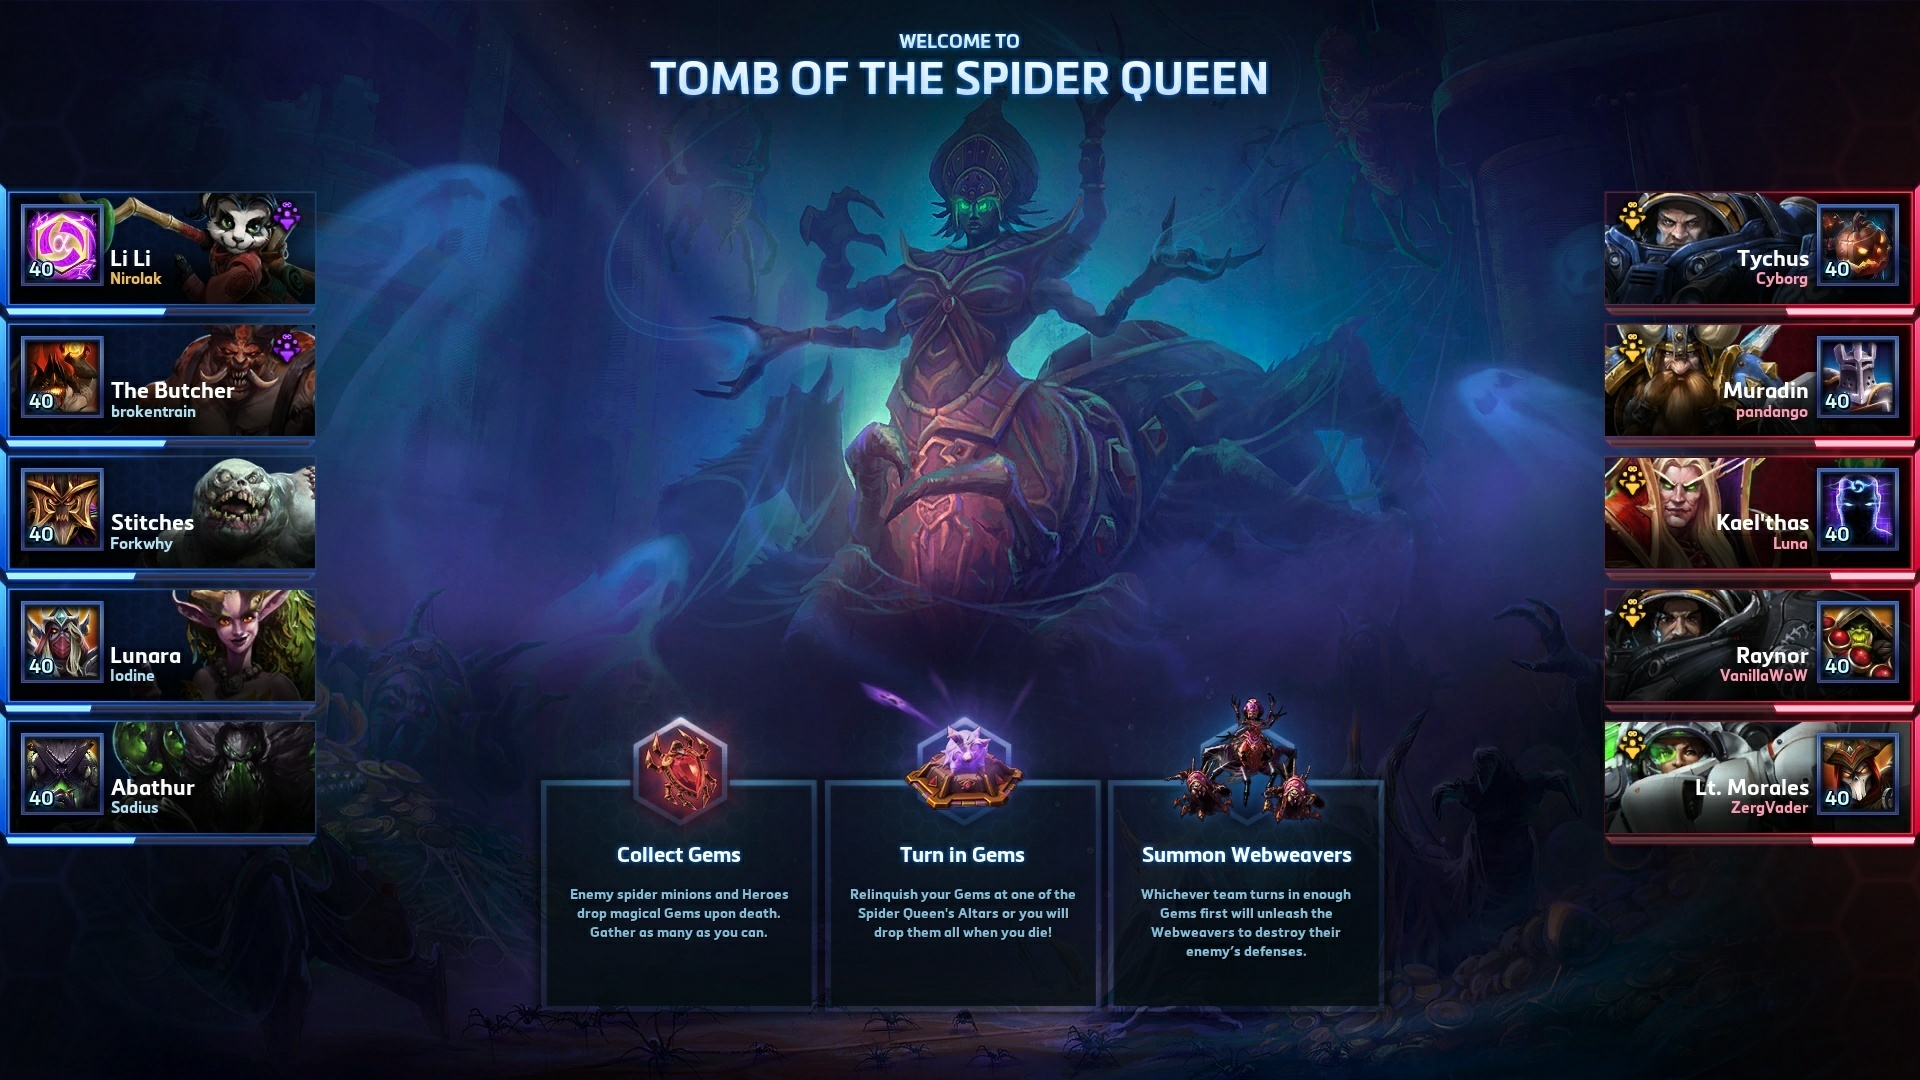 heroes of the storm matchmaking bad For quite some time, matchmaking has been an issue in heroes of the storm - something the game's community has vocalised on many occasions introduced the first phase of improvements to its matchmaking system, while its players were simultaneously invited to voice any bad experiences with an.